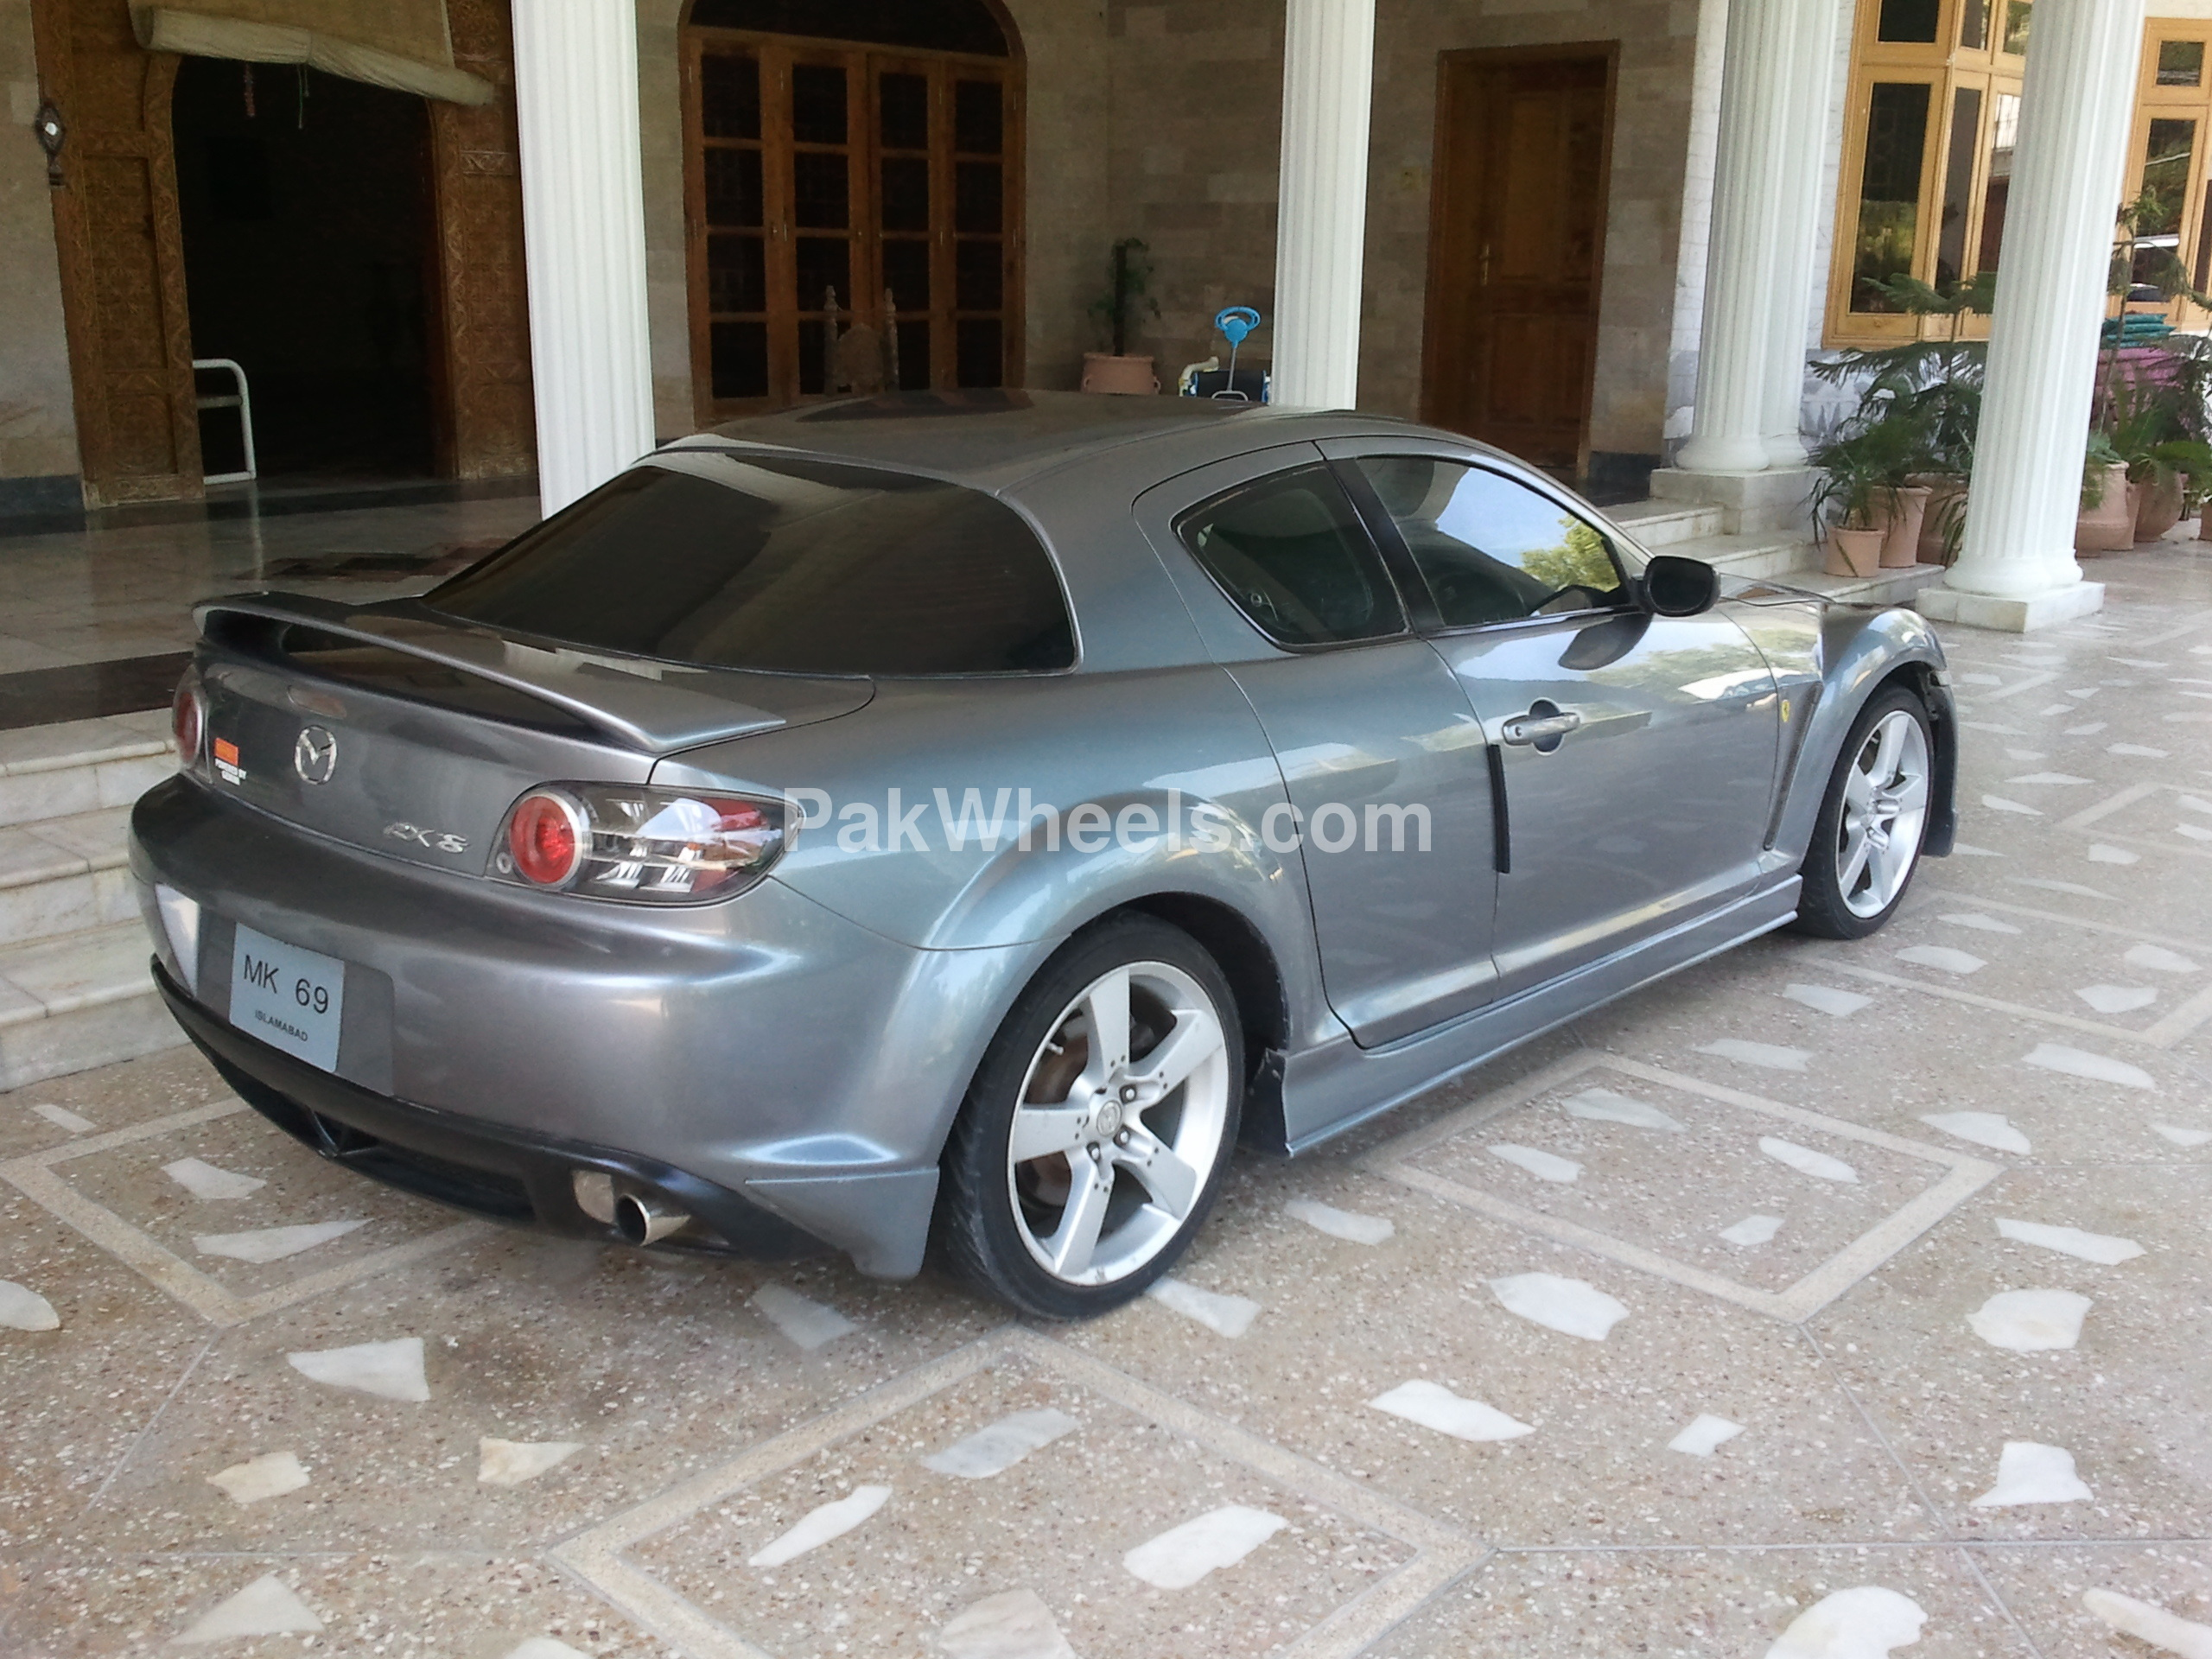 rx inventory en gt for sale performance vehicle mazda used ottawa in